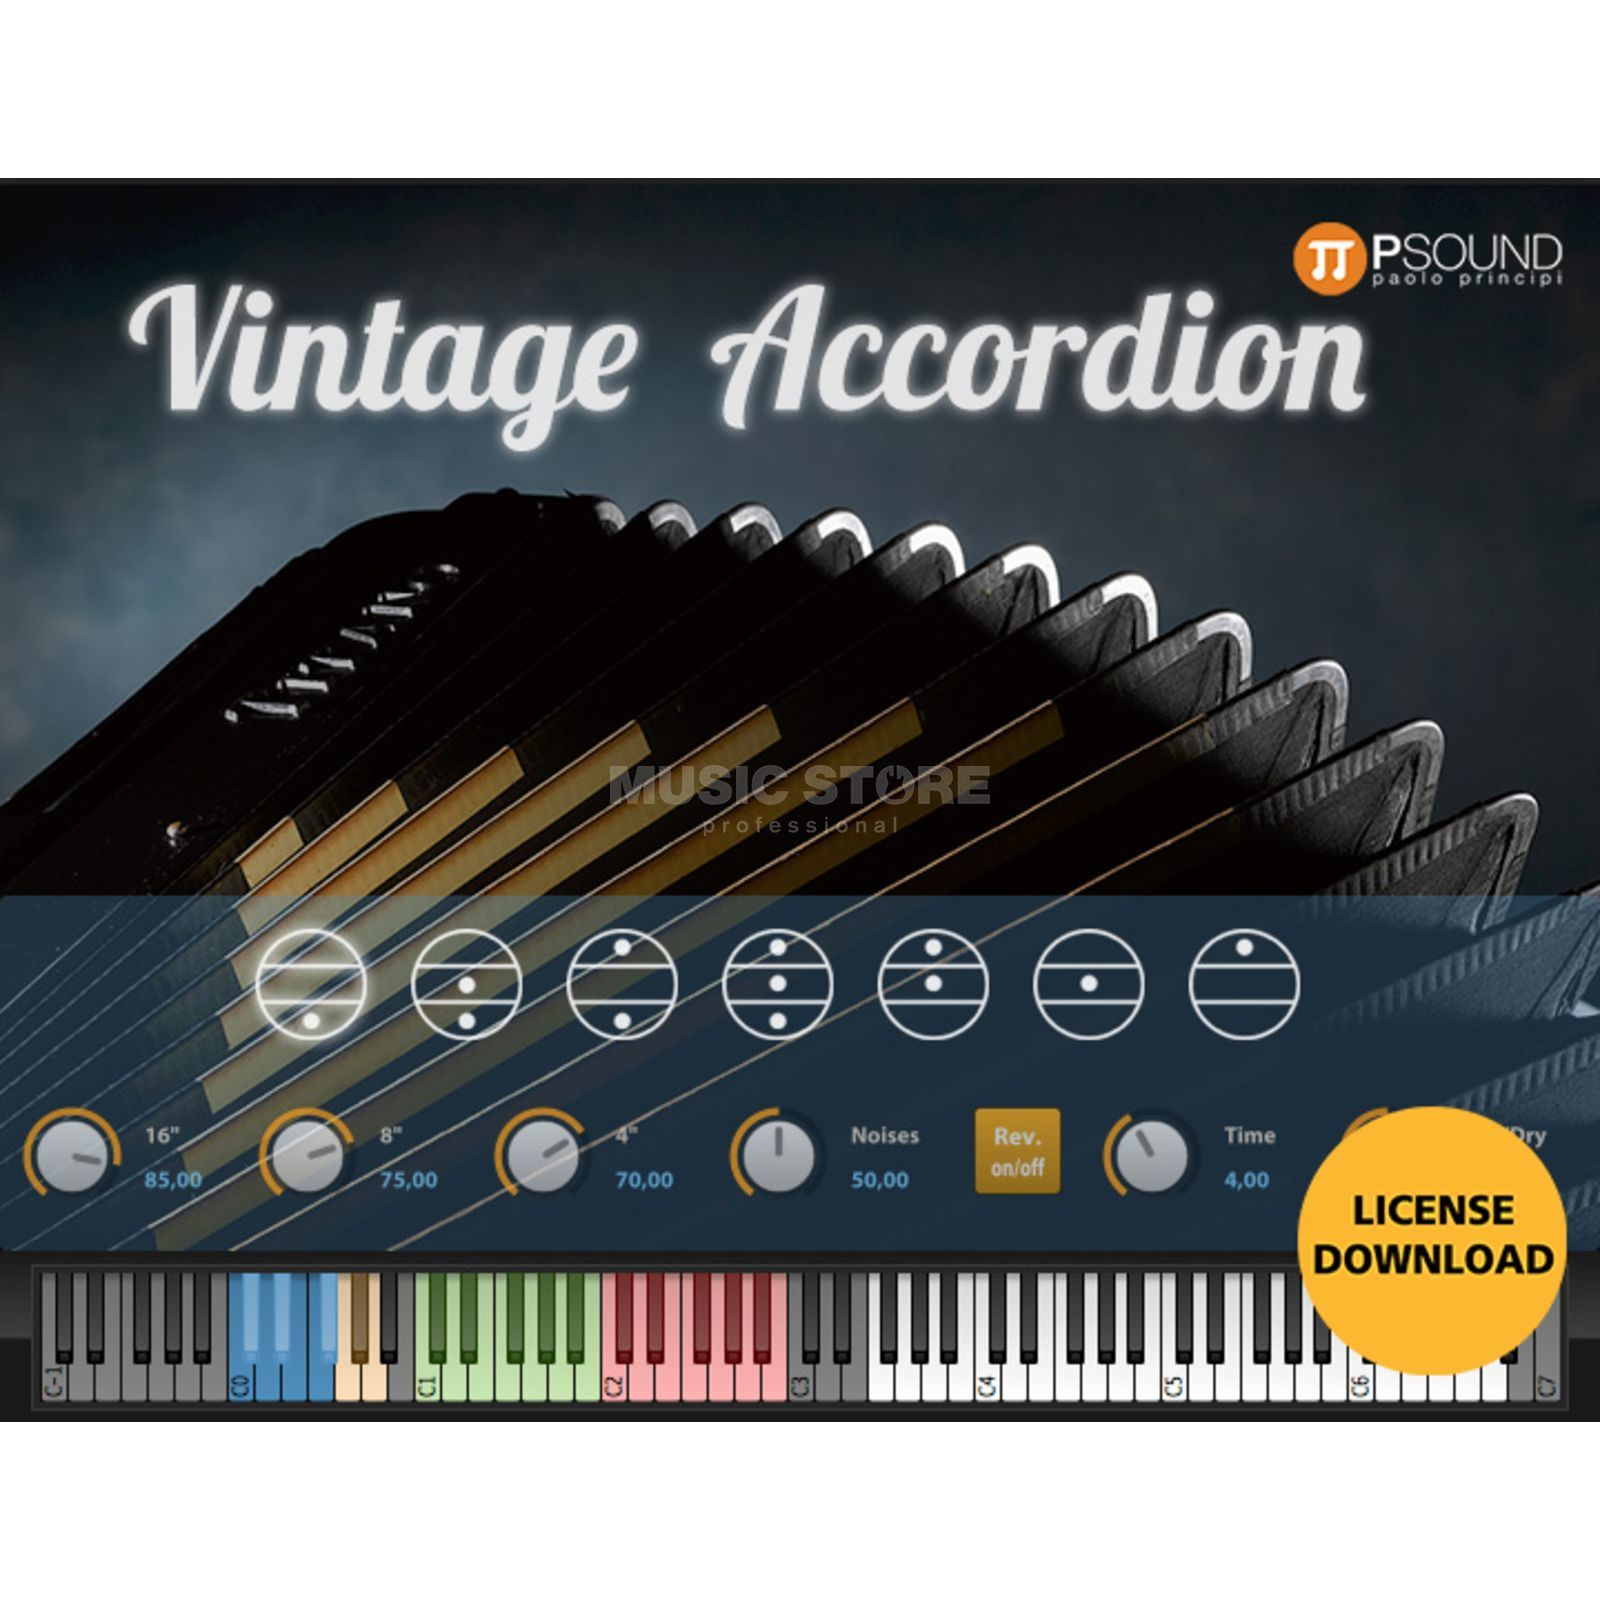 PSOUND PAOLO PRINCIPI Vintage Accordeon (CODE) incl UVI Worksation Produktbild